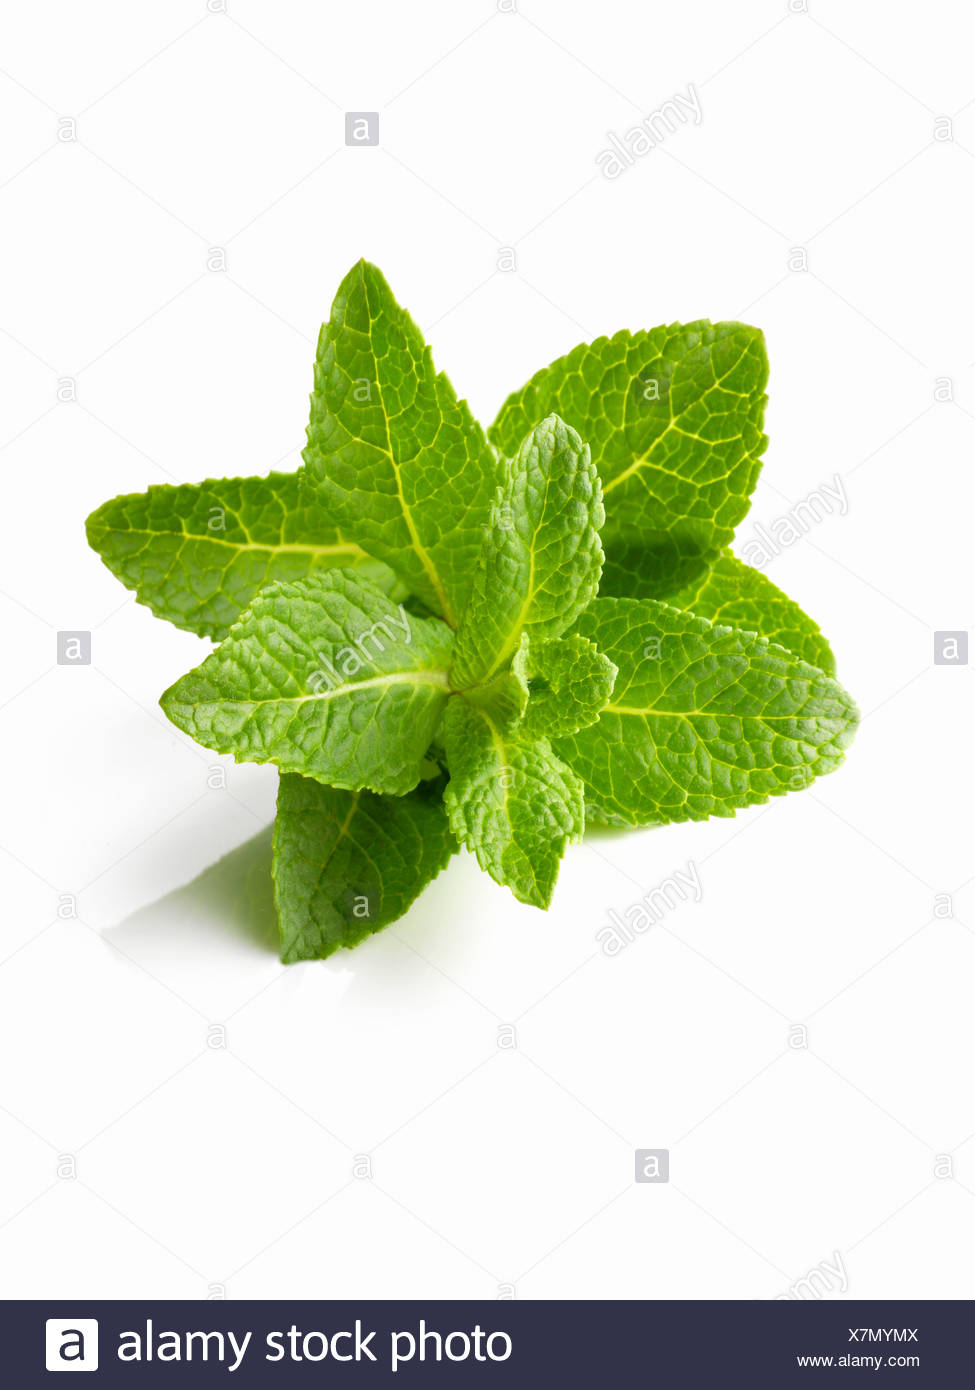 Mint leaves - Stock Image